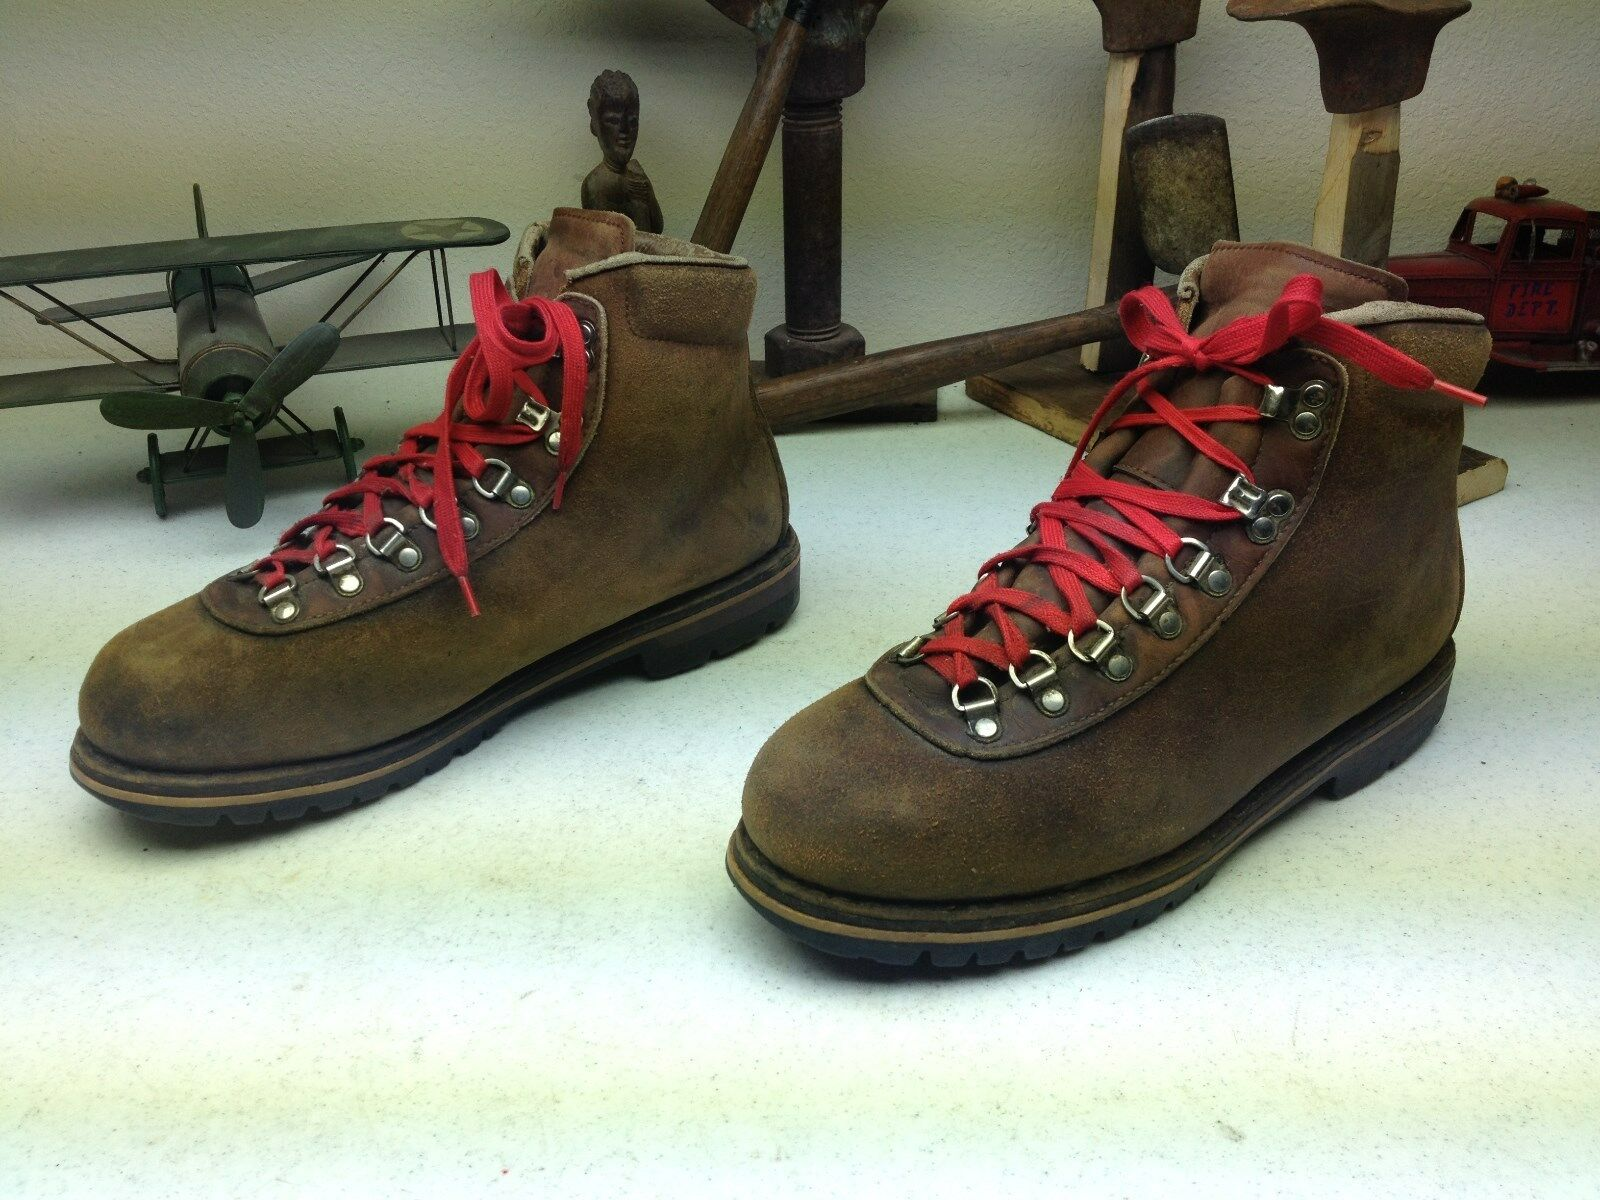 SWISS MADE MOUNTAIN DISTRESSED BROWN LEATHER RAICHLE LACE UP ANKLE MOUNTAIN MADE BOOTS 10.5? M d9fe8d